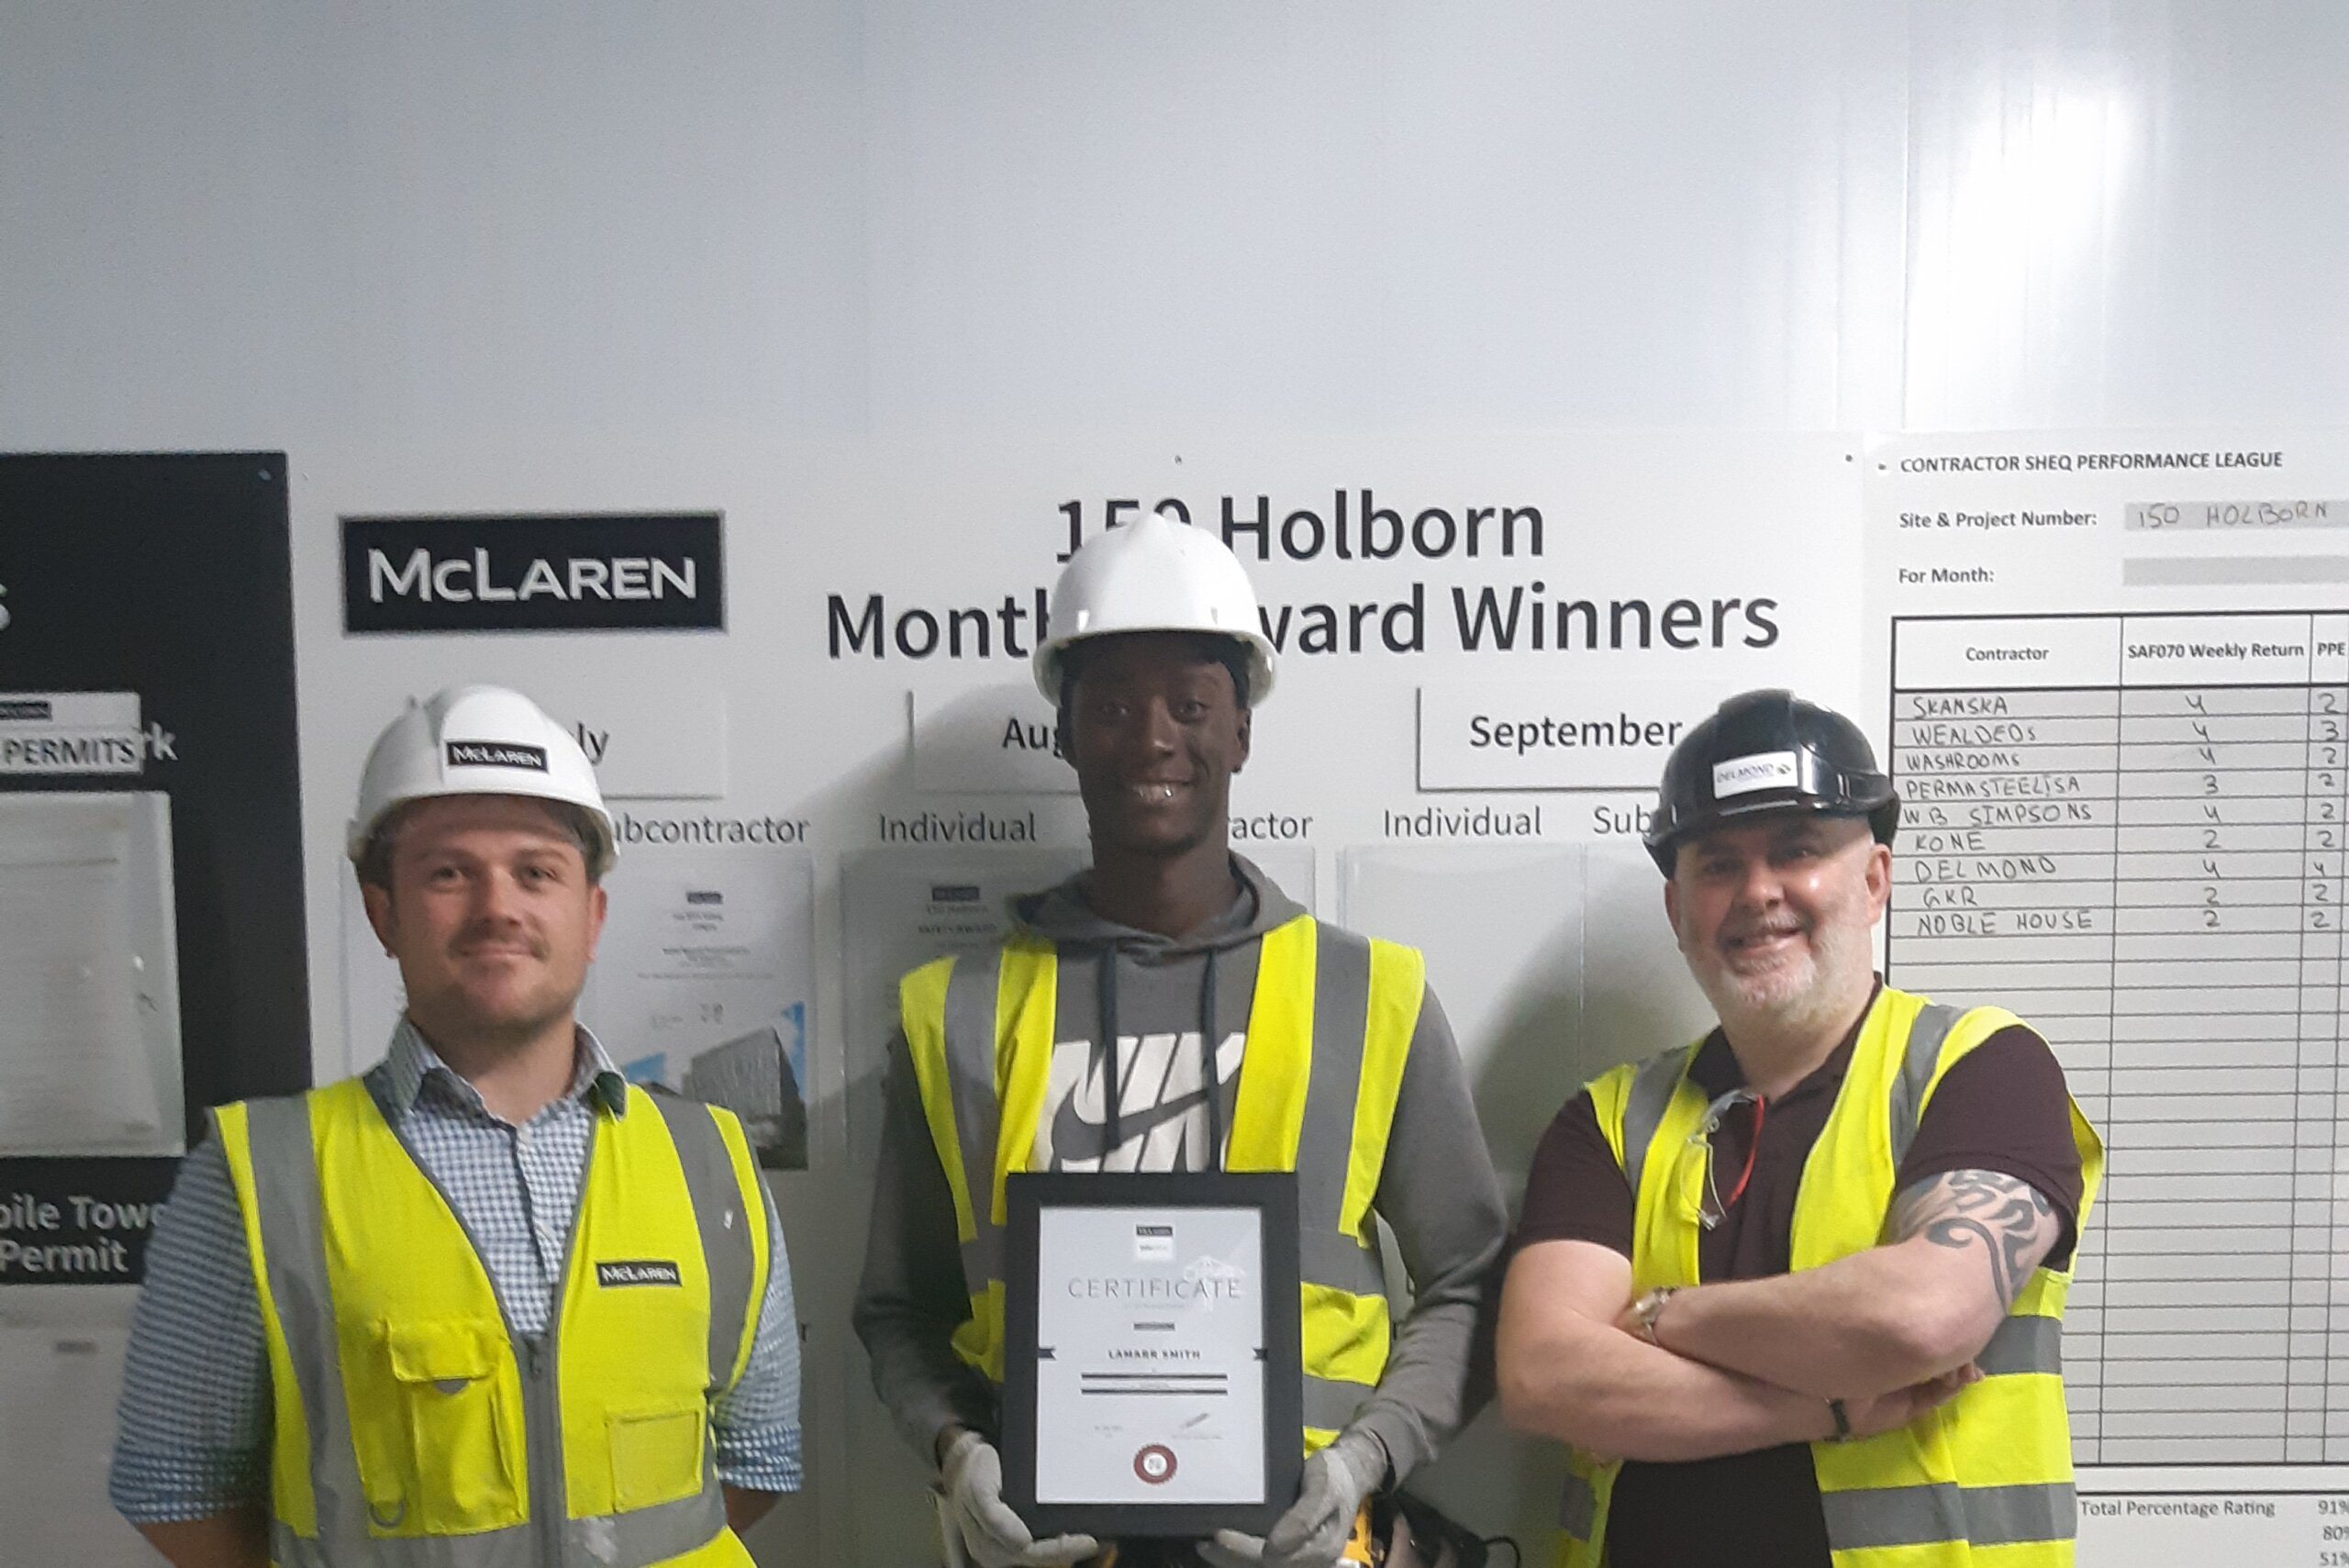 From L to R: Craig (Walter McLaren Site Manager) / Centre - Lamarr Smith (Drylining Apprentice) / Stephen Connolly (Delmond Project Manager)